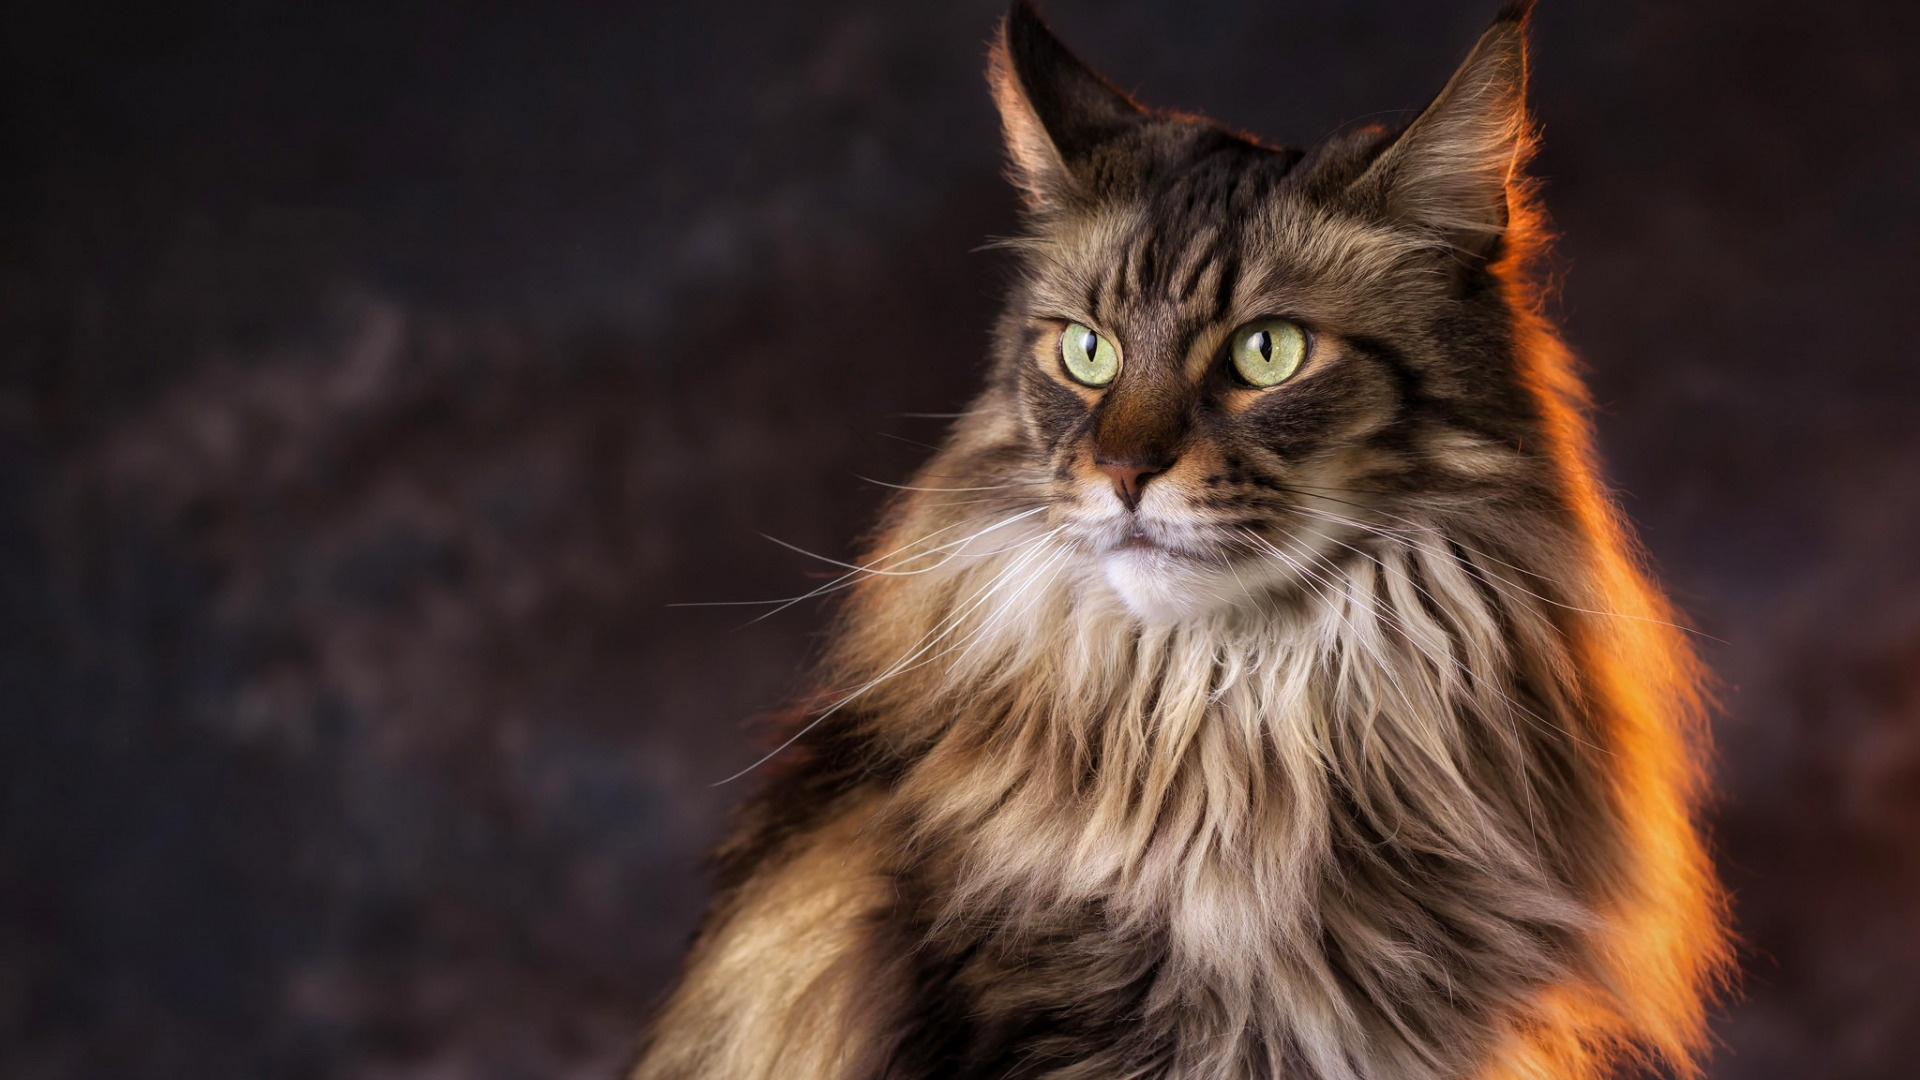 Maine Coon Cat wallpaper for computer